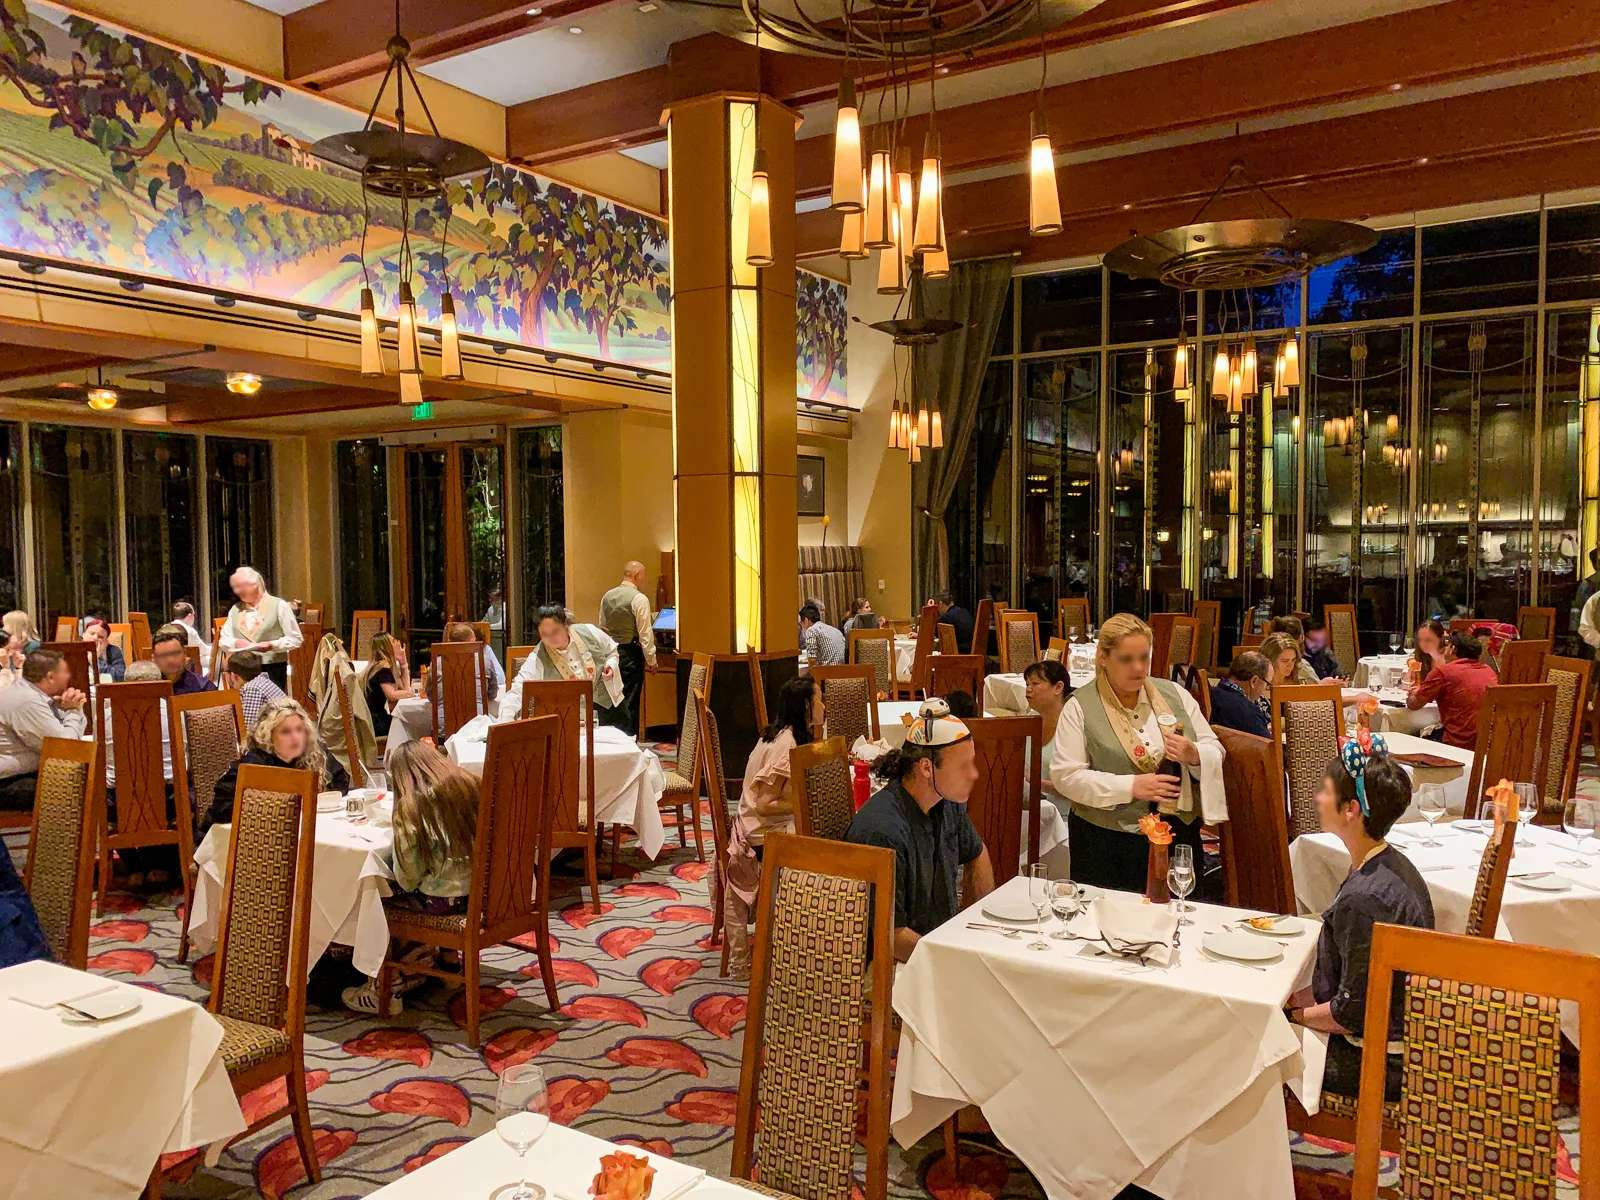 Disneyland Grand Californian Hotel Restaurant